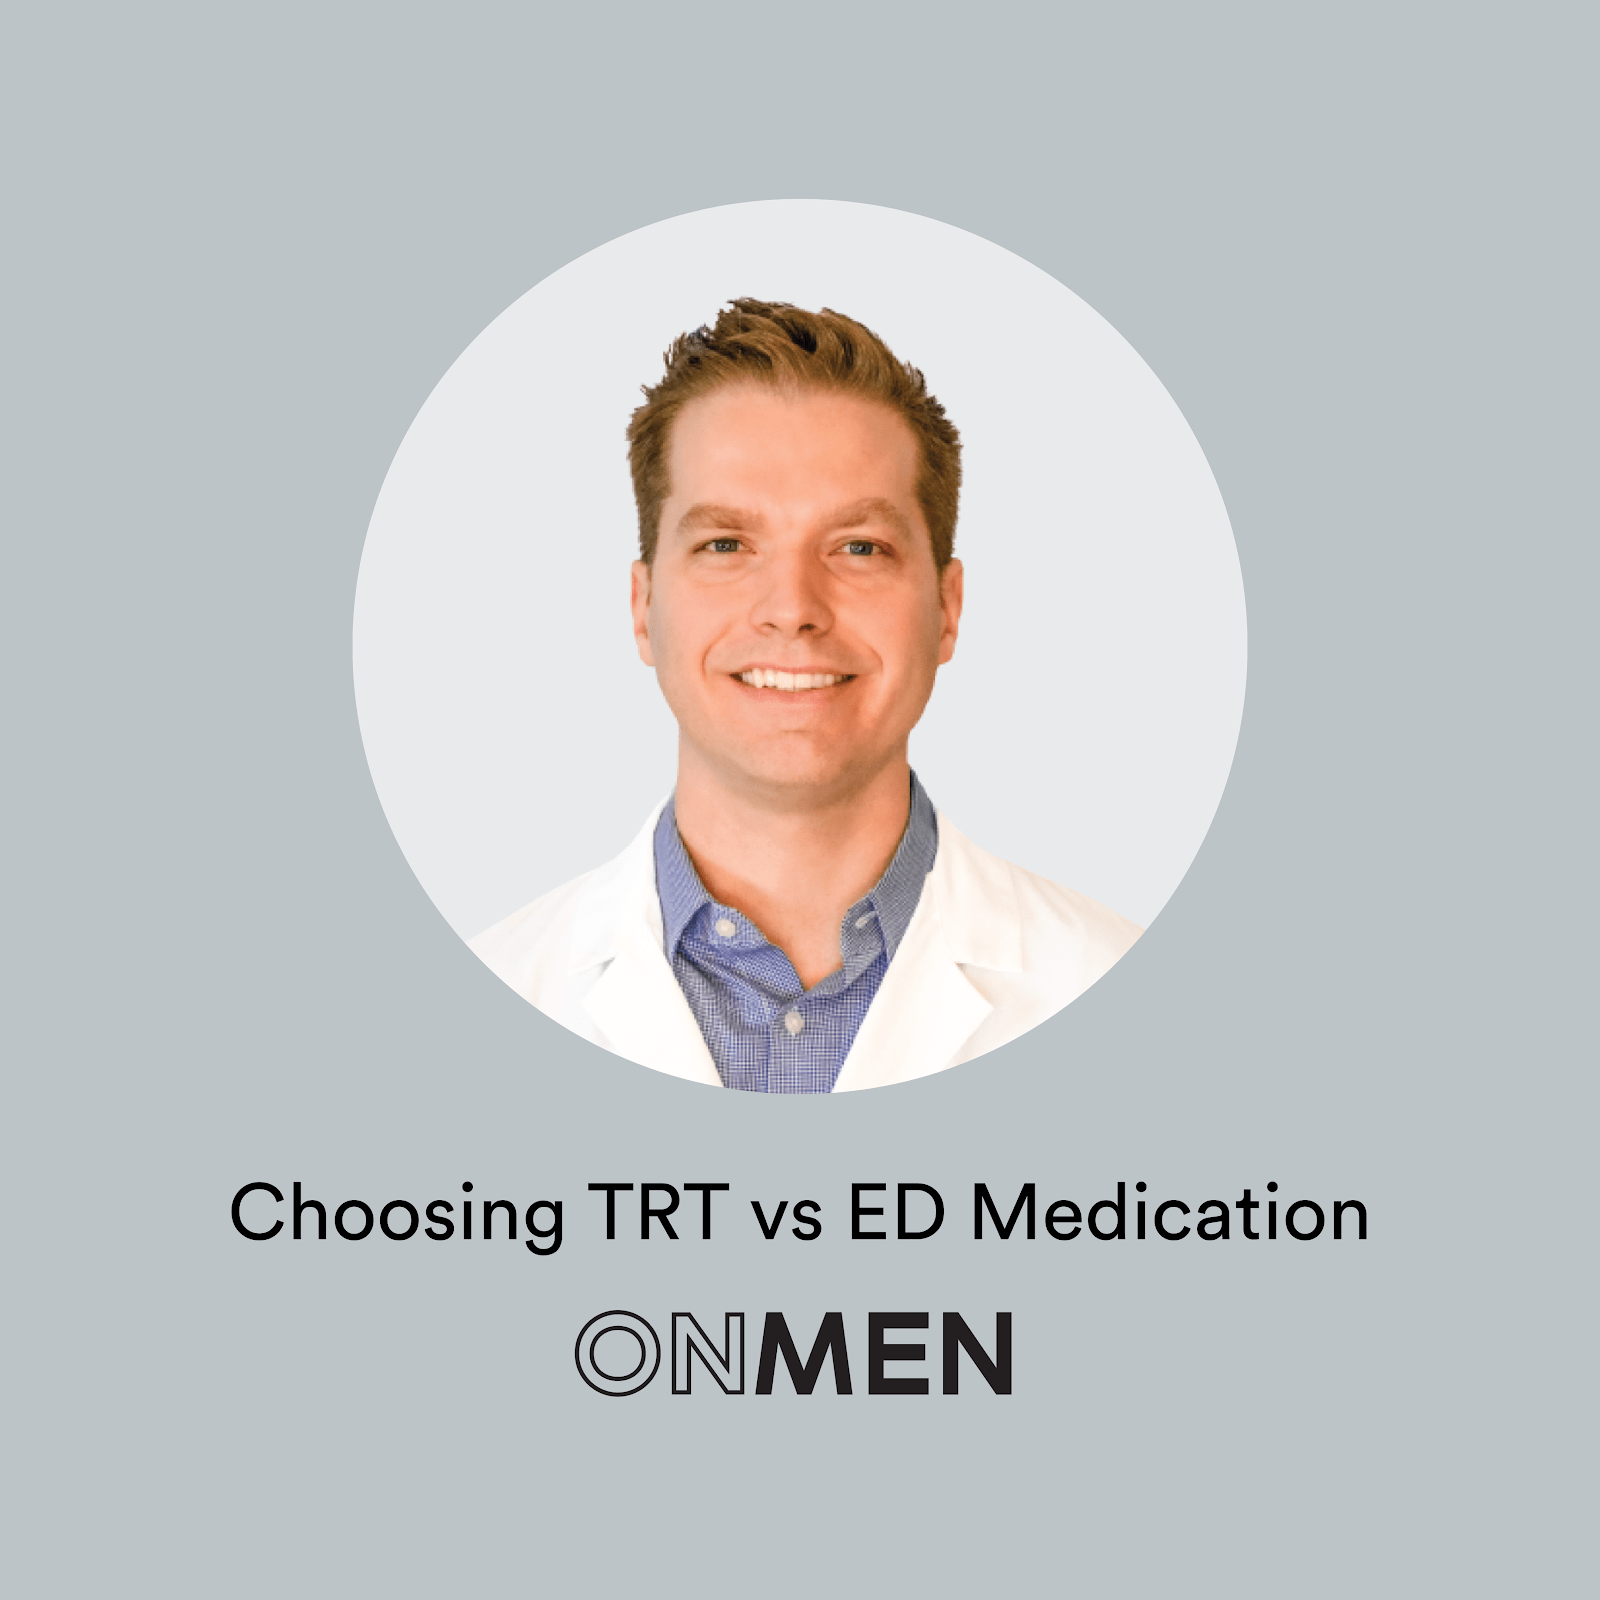 Why would someone choose TRT over ED medication?